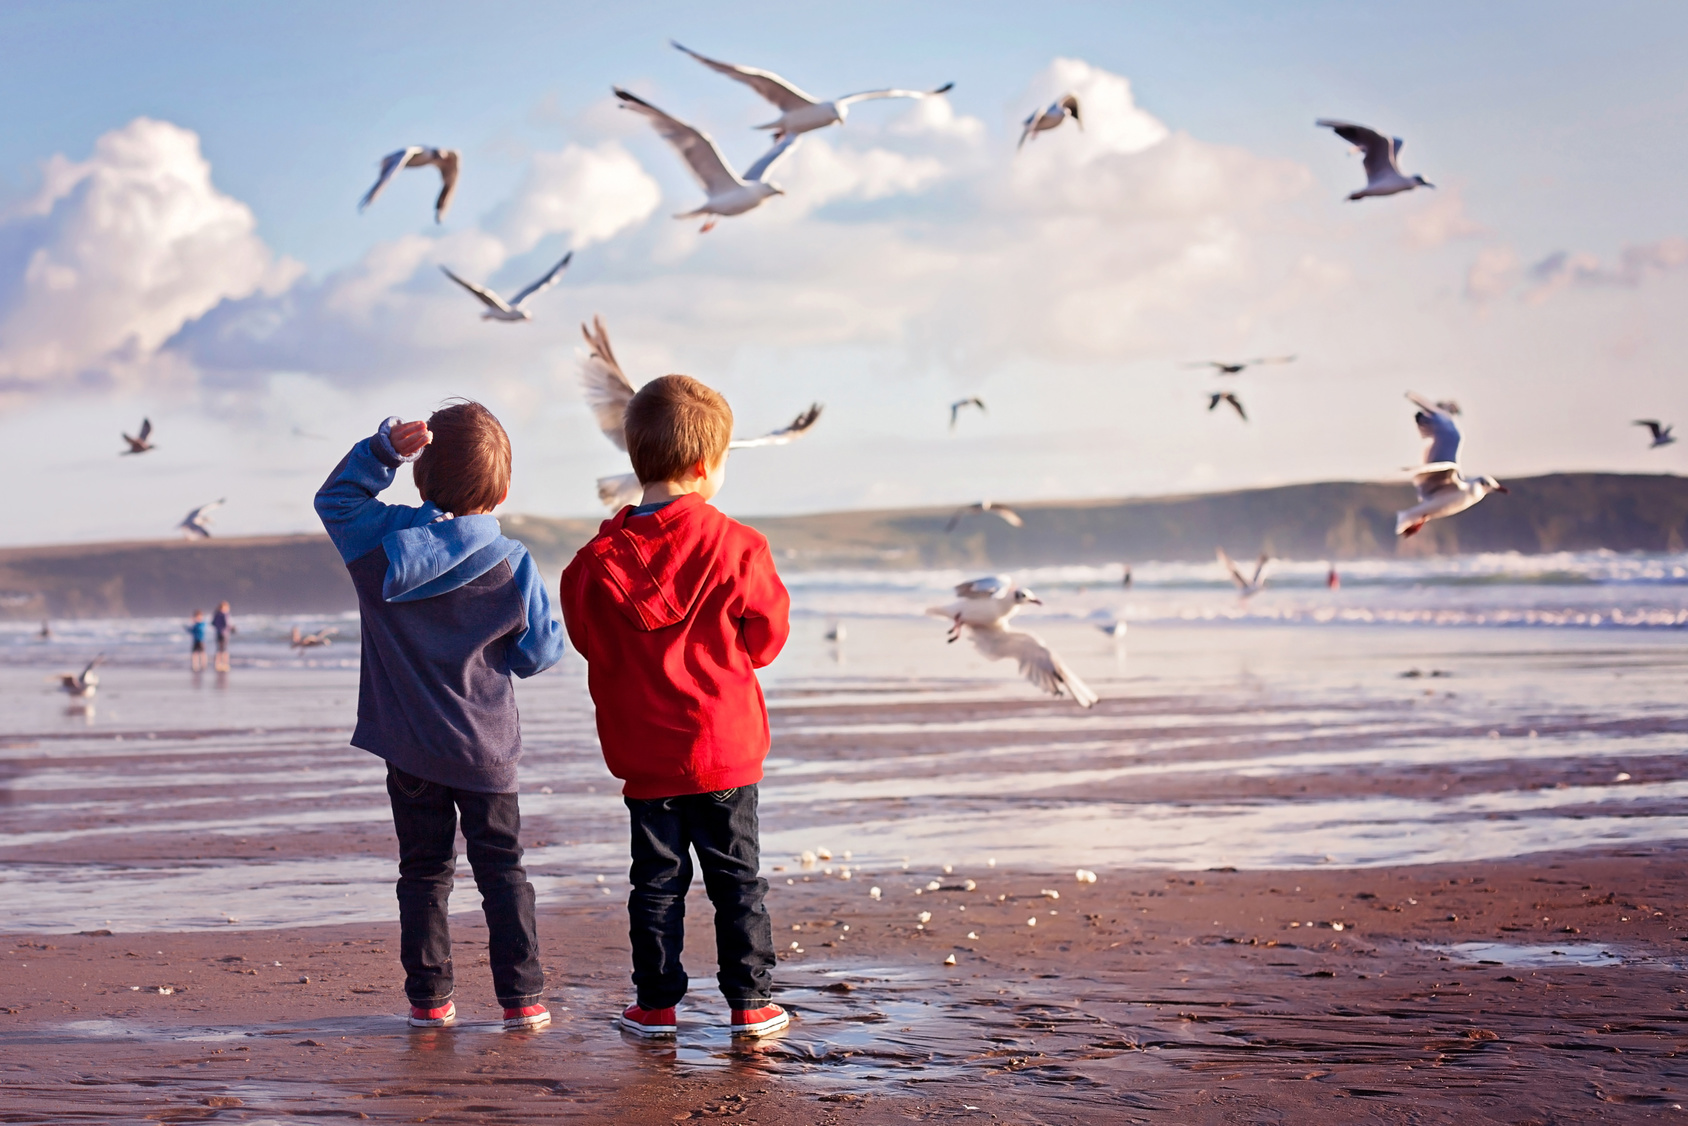 Two adorable kids, feeding the seagulls on the beach